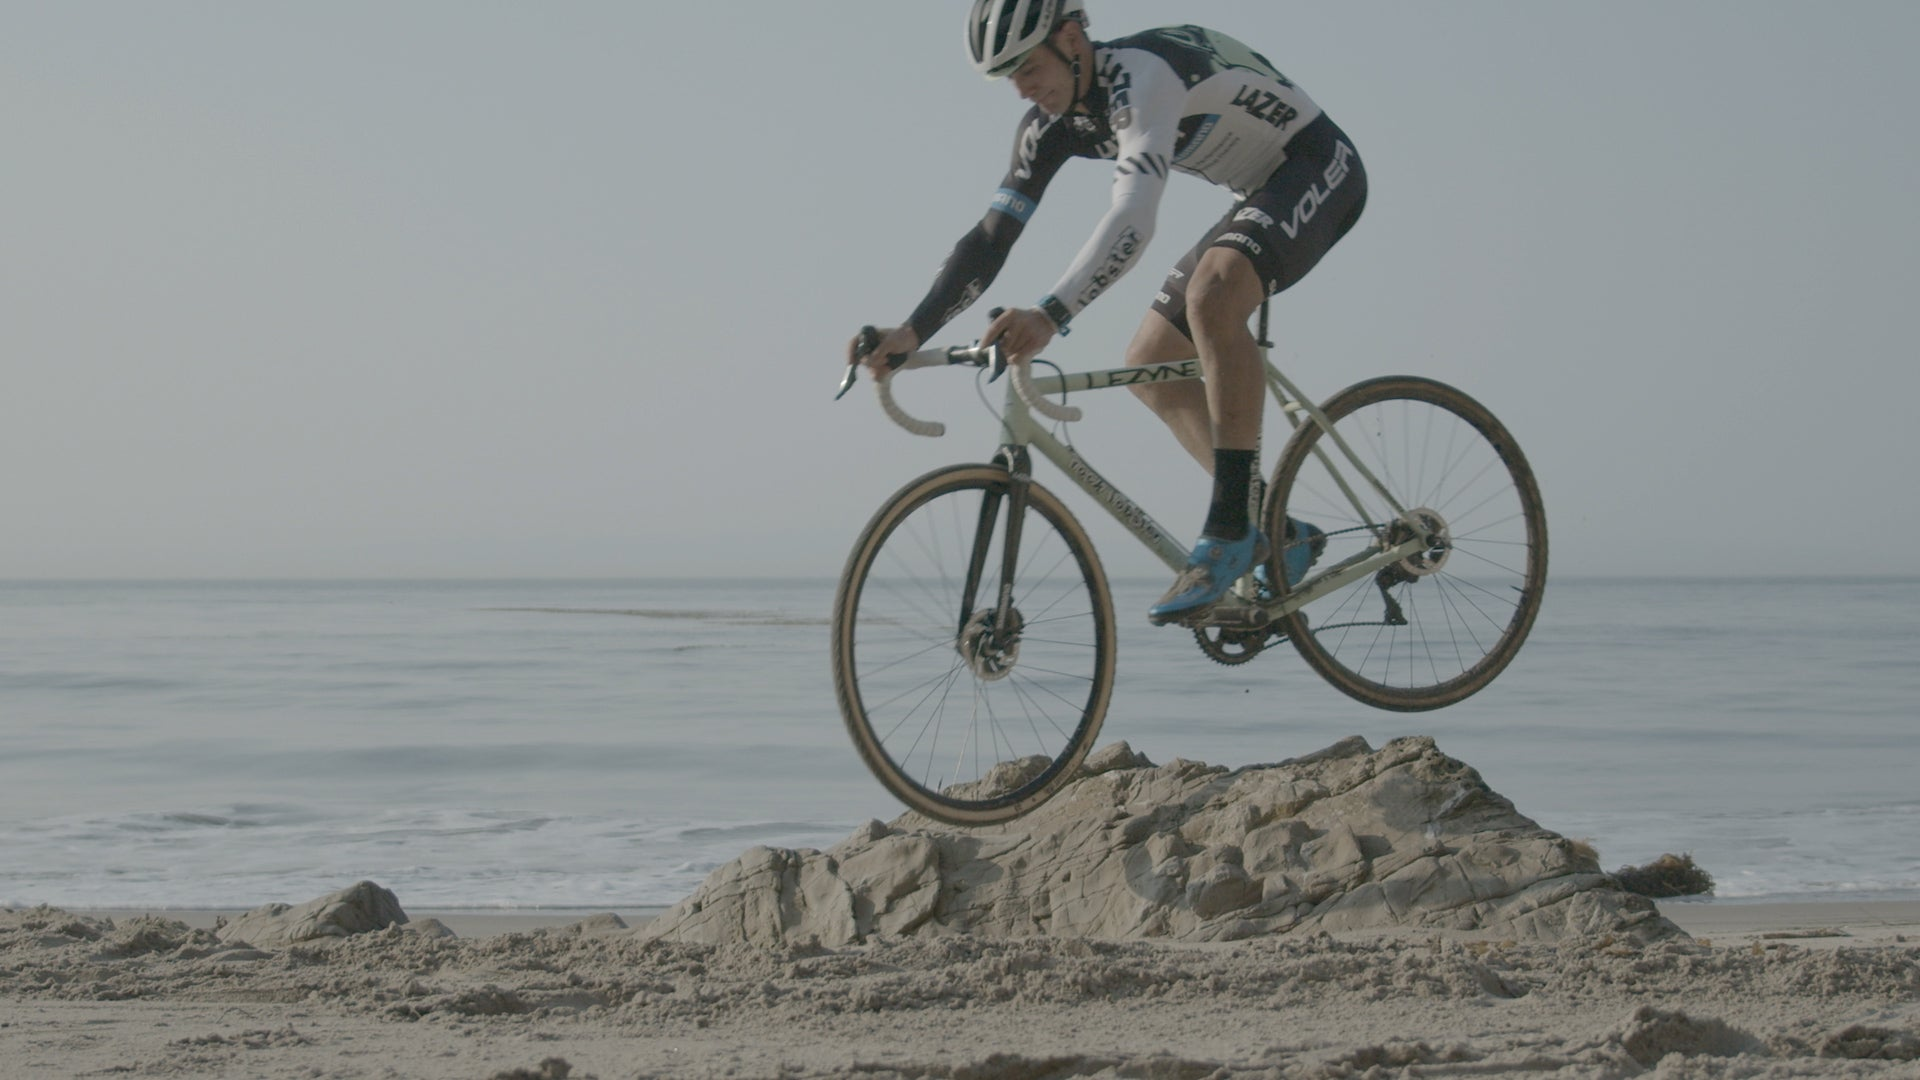 Andrew Juiliano TIdes: A Sandy Cycling Ode